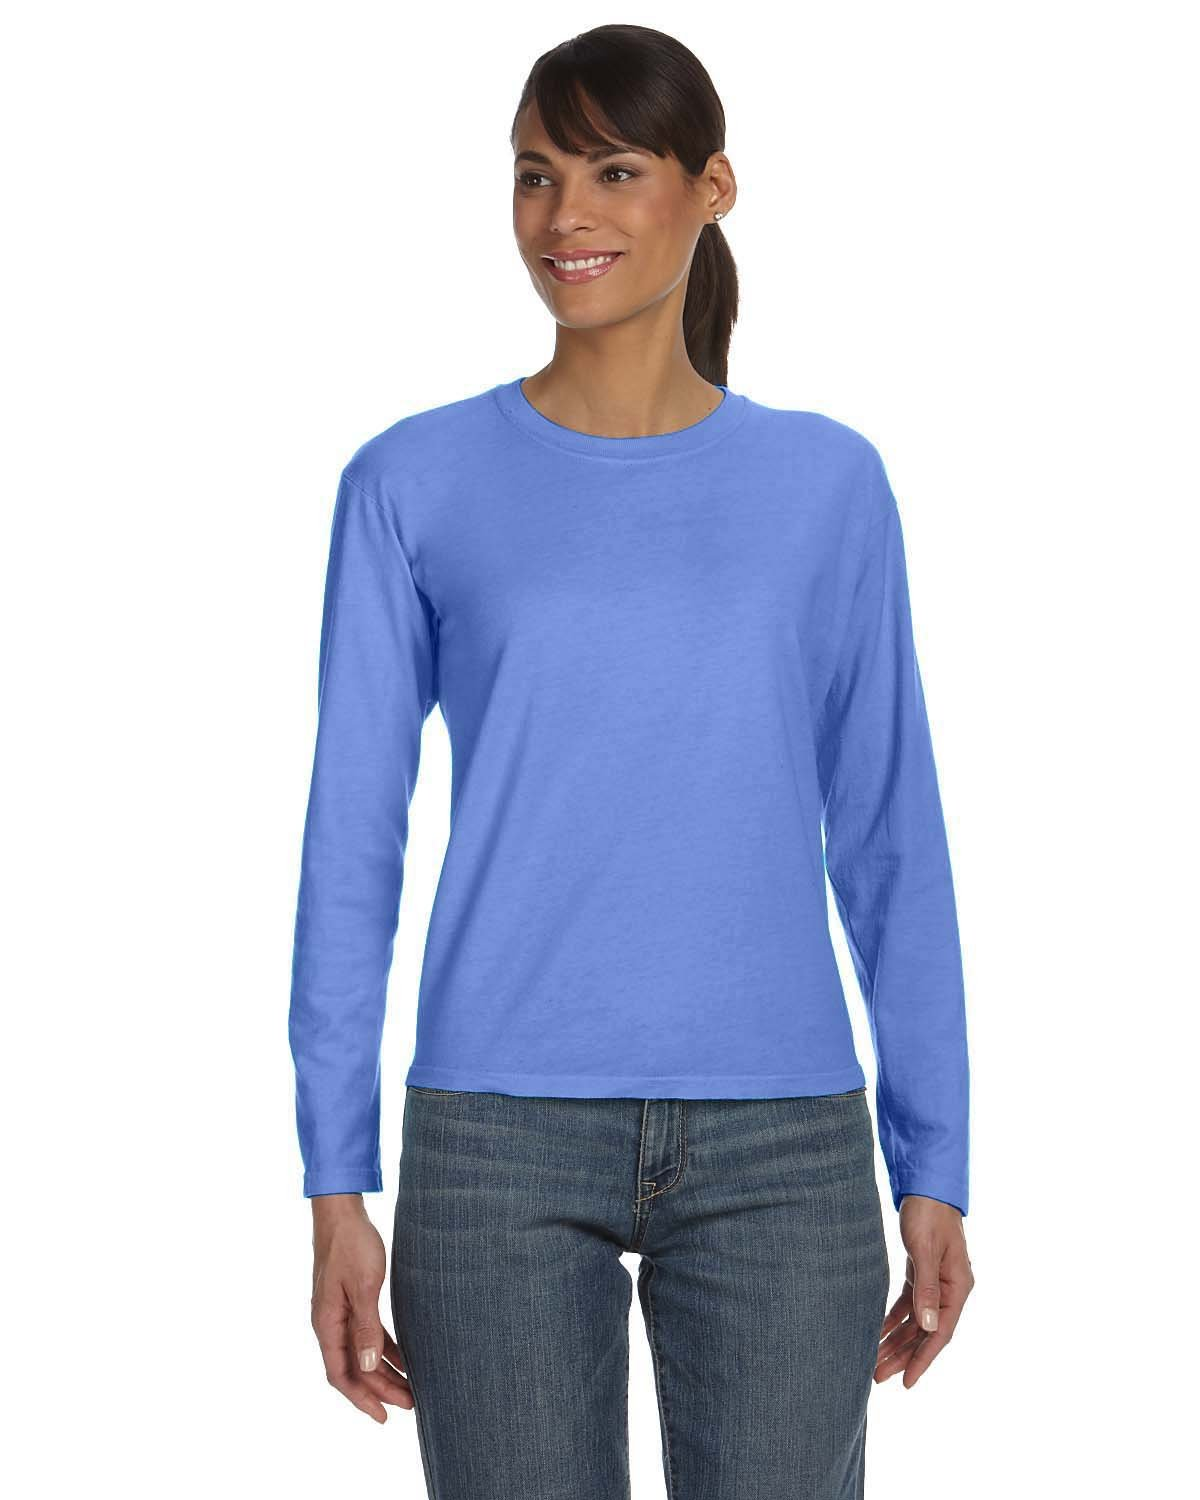 Comfort Colors Ladies' Midweight RS Long-Sleeve T-Shirt FLO BLUE